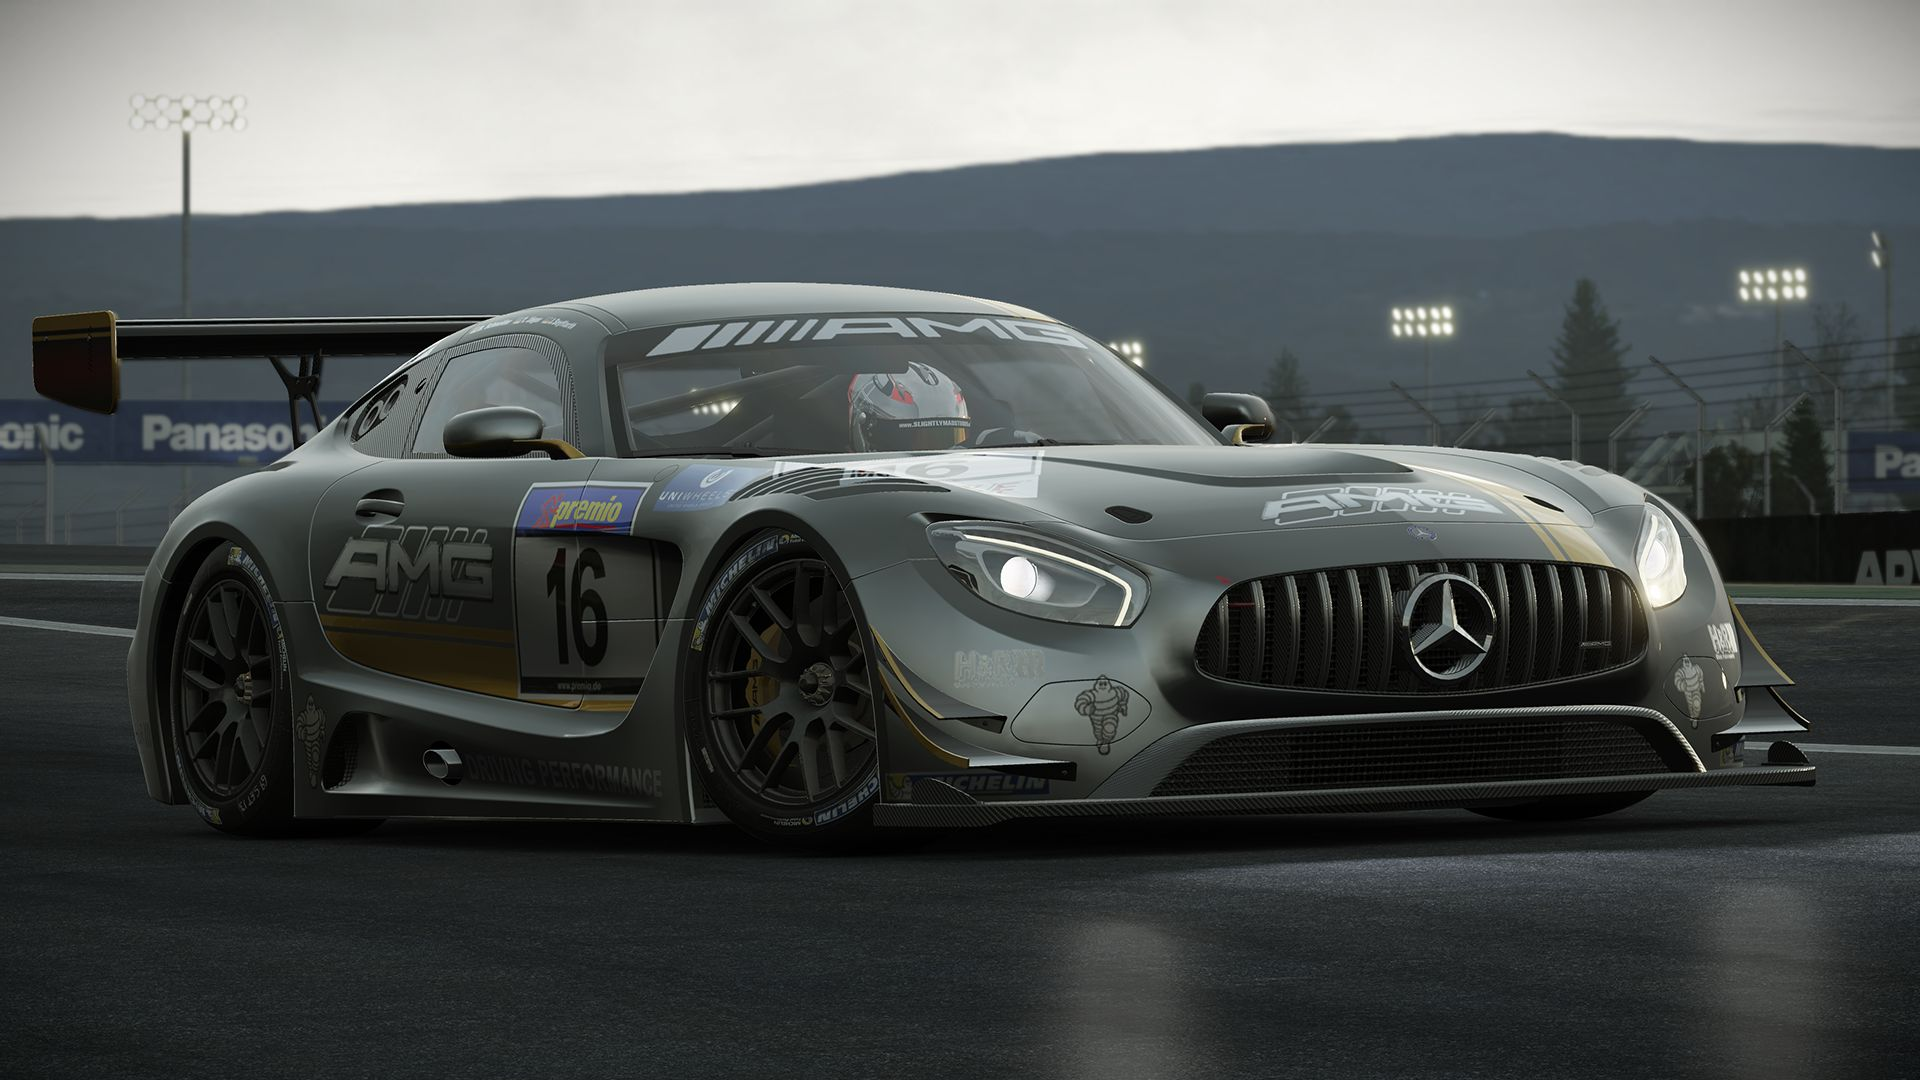 Project cars new mercedes amg gt3 previews virtualr sim racing - Ss143902_1